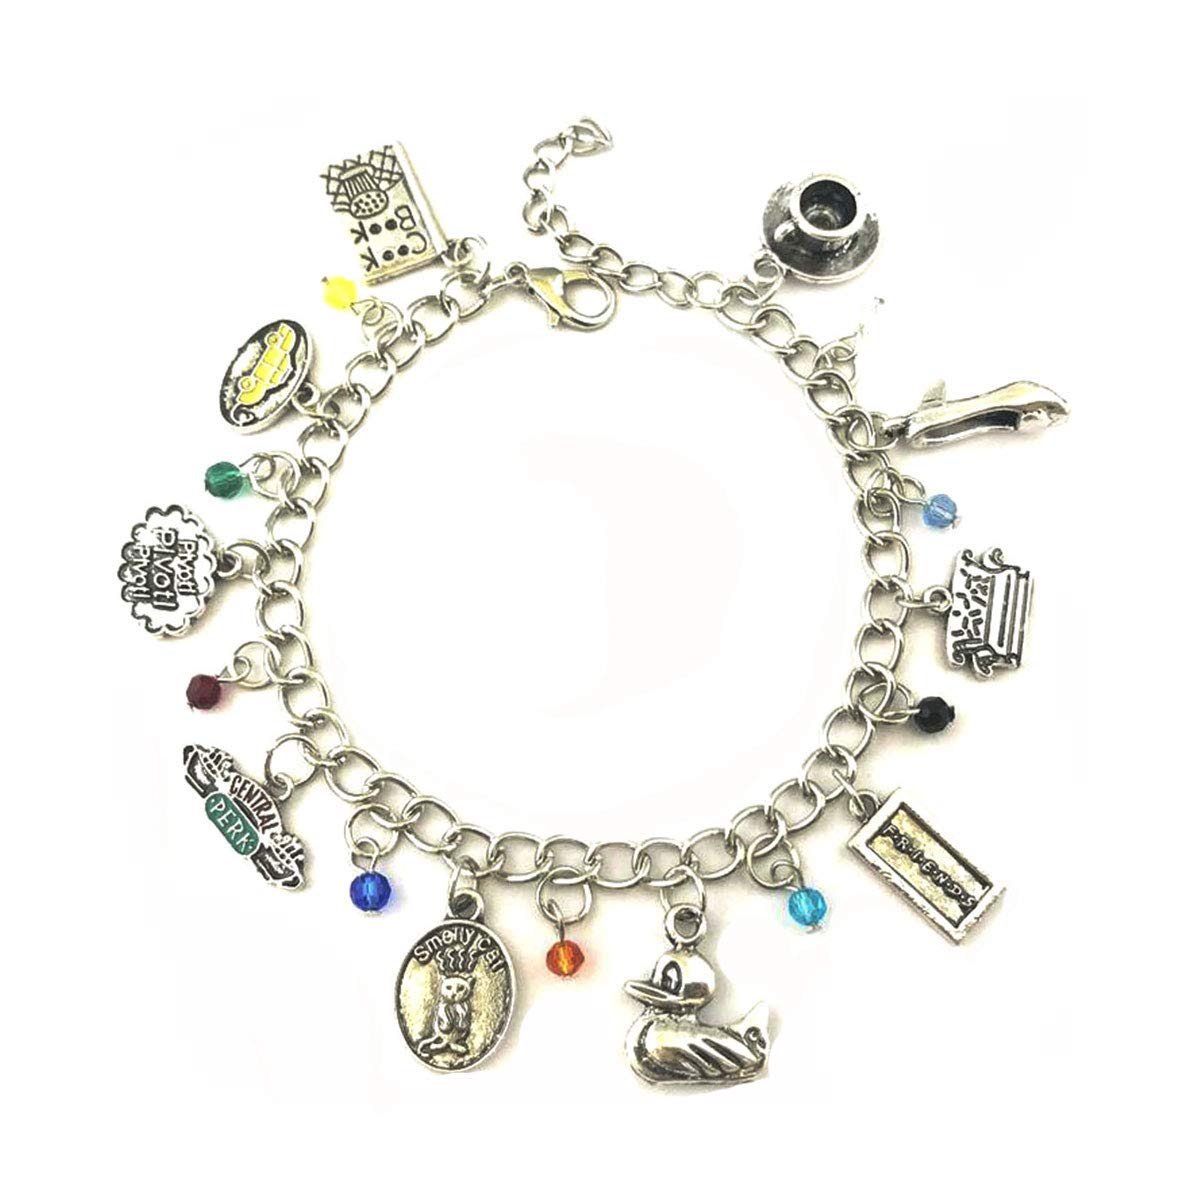 Blingsoul TV Show Charm Bracelet - Friends Merchandise TV Show Costume Jewelry Gifts for Women by Blingsoul